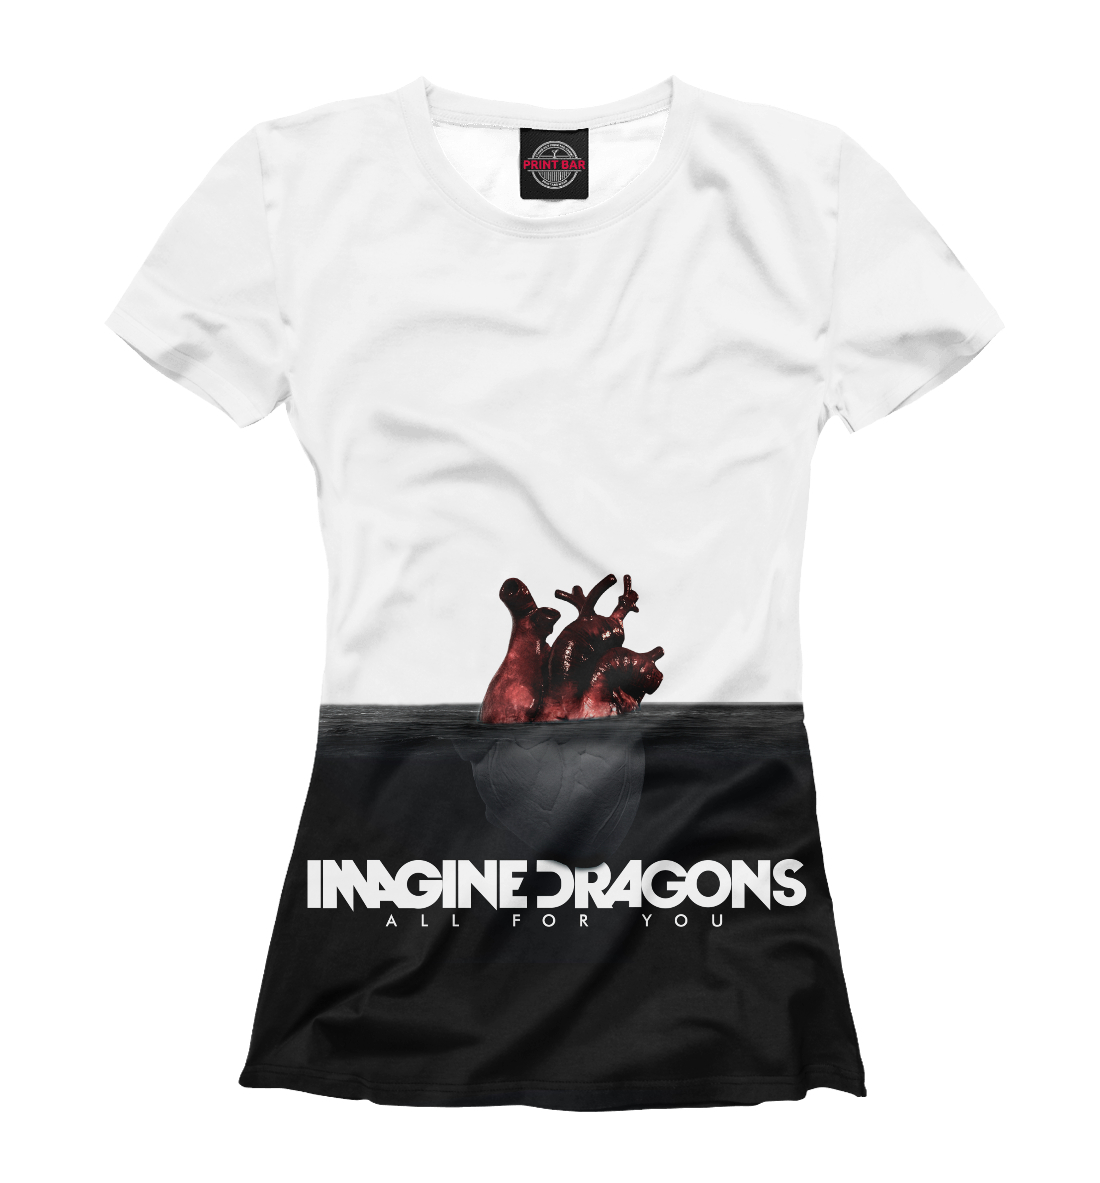 Купить Imagine Dragons, Printbar, Футболки, IMA-201903-fut-1